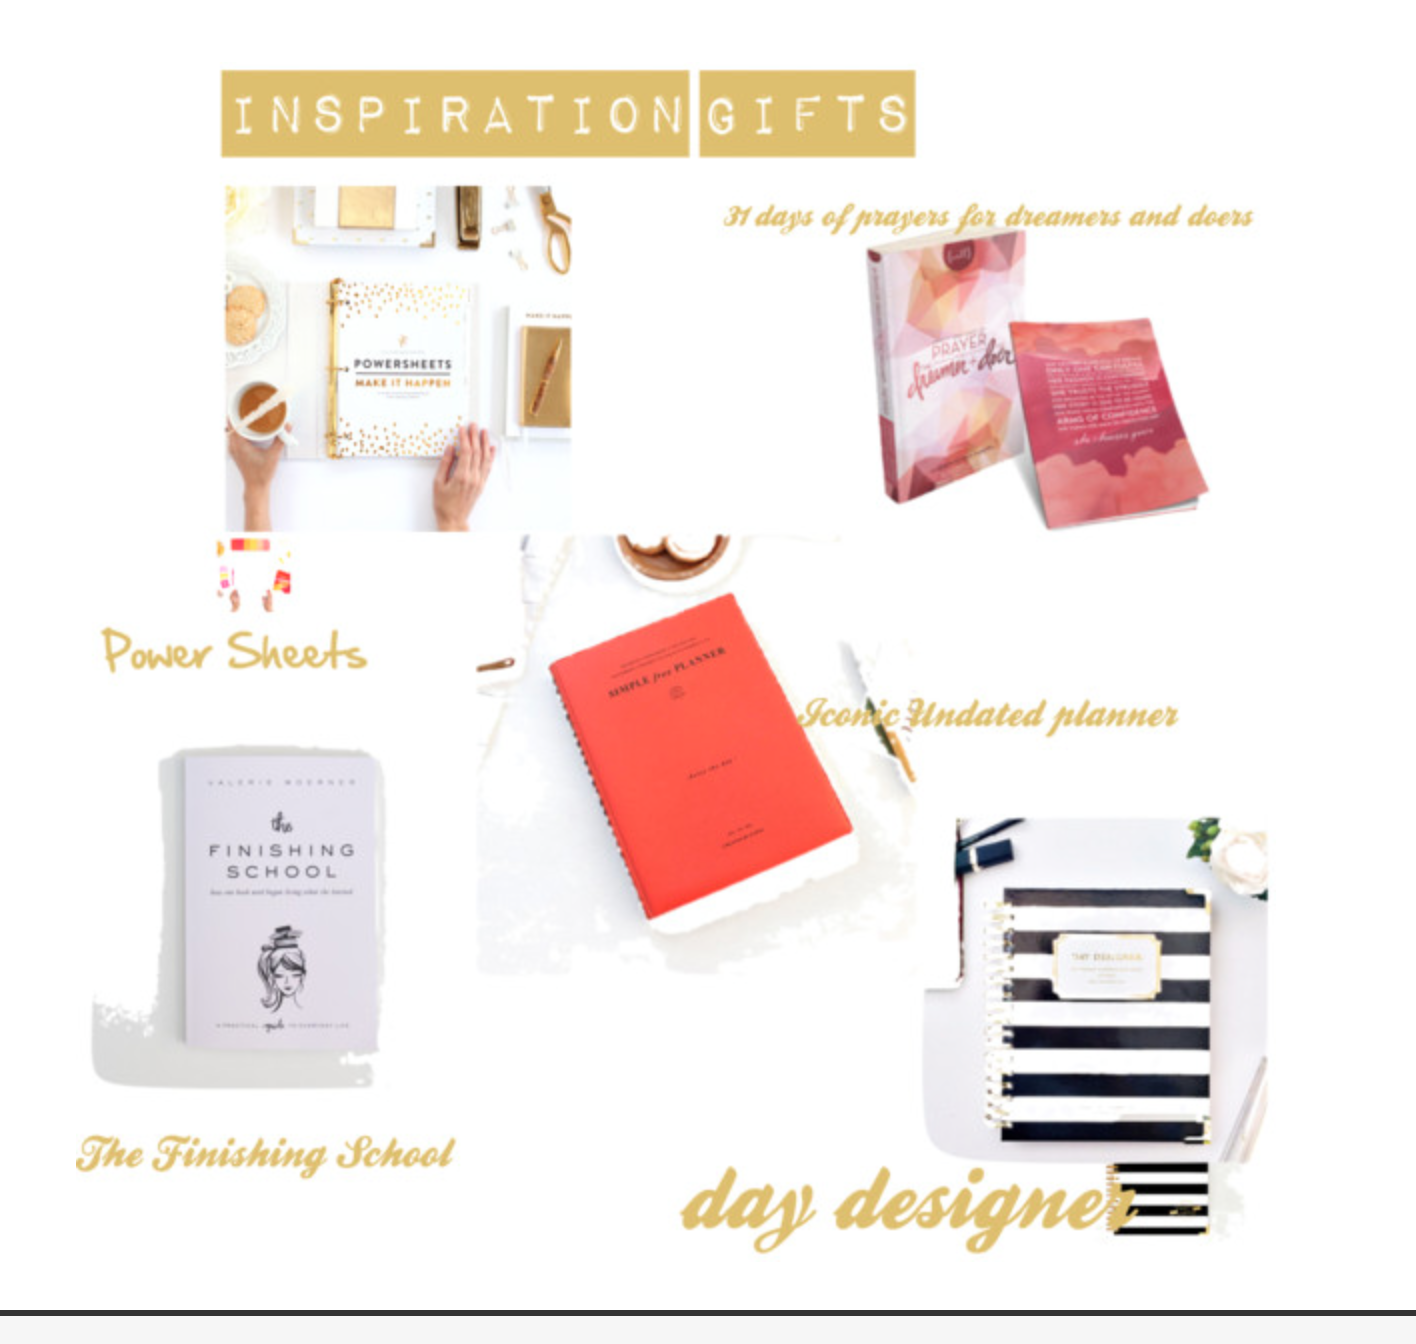 the modest life inspirational gift ideas